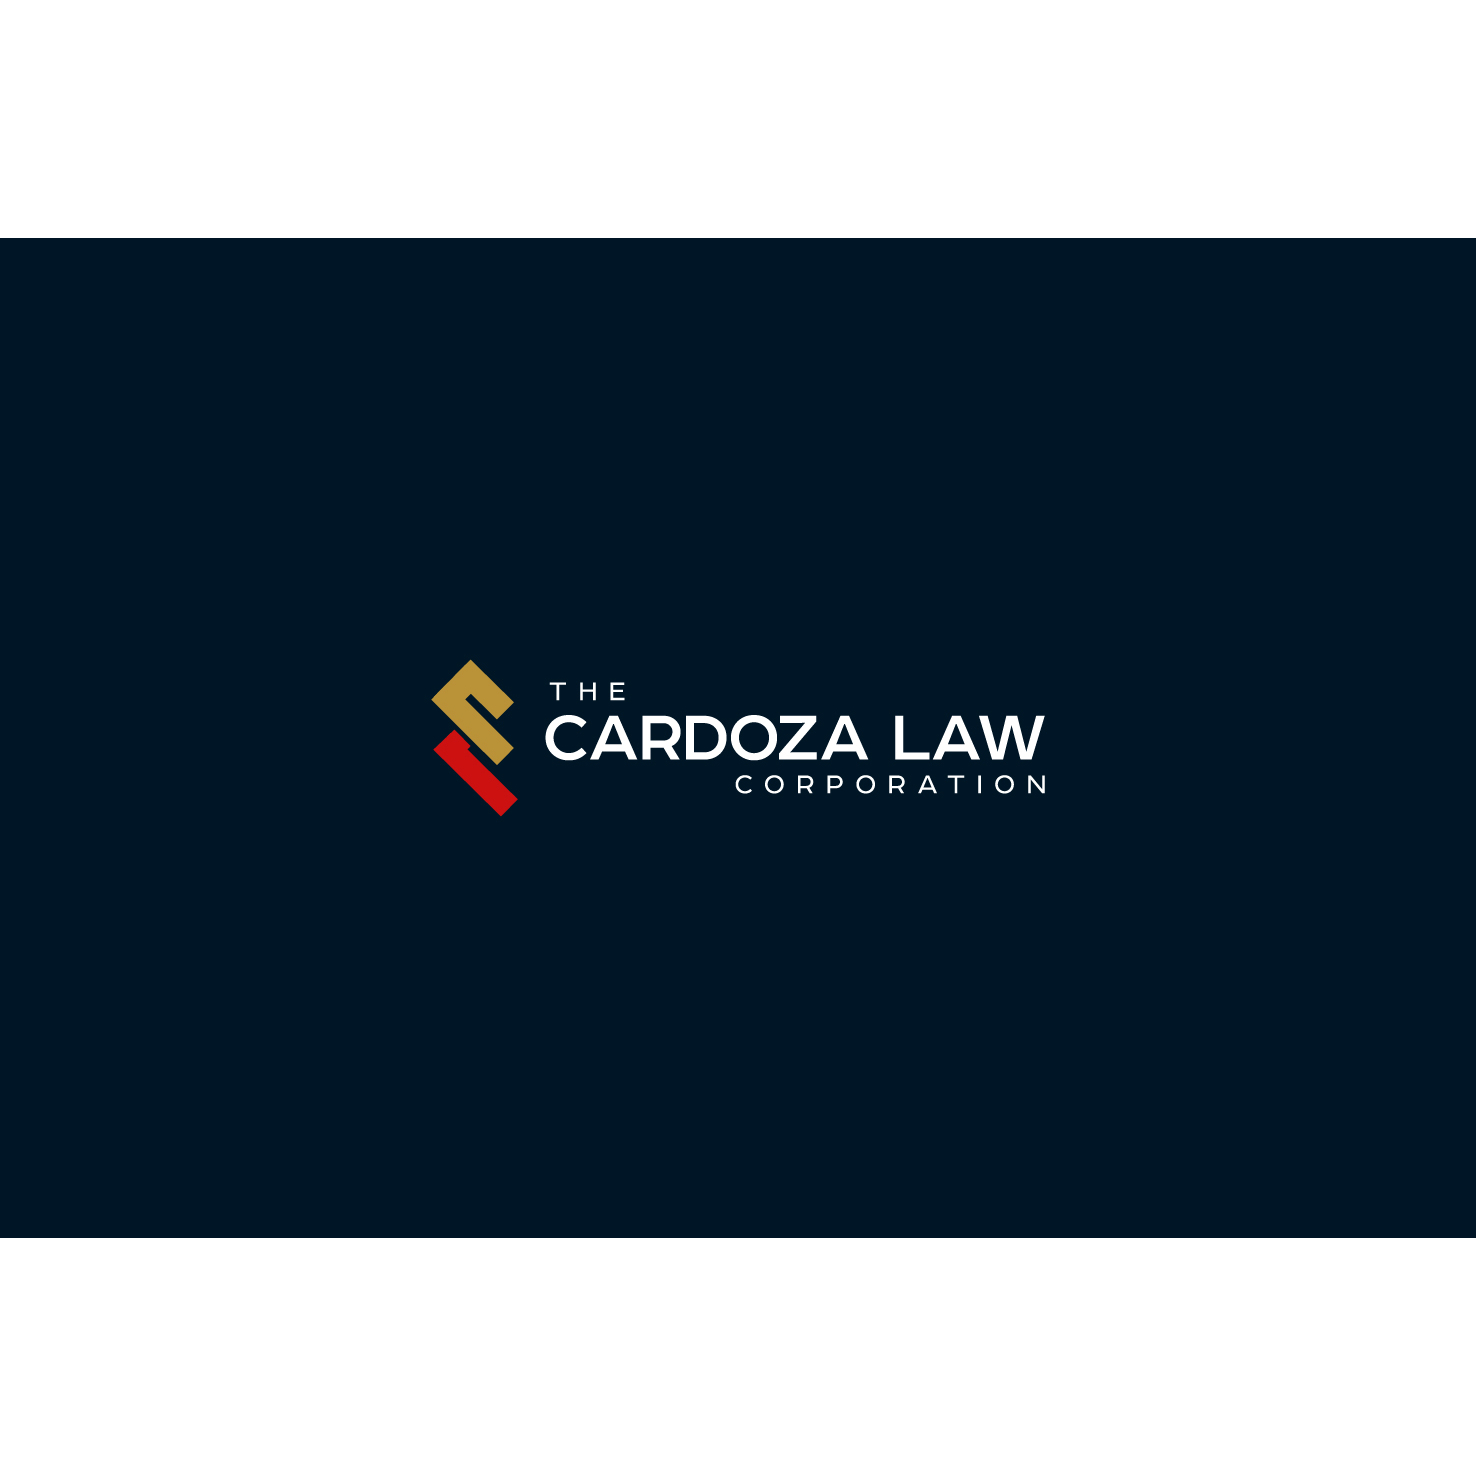 The Cardoza Law Corporation